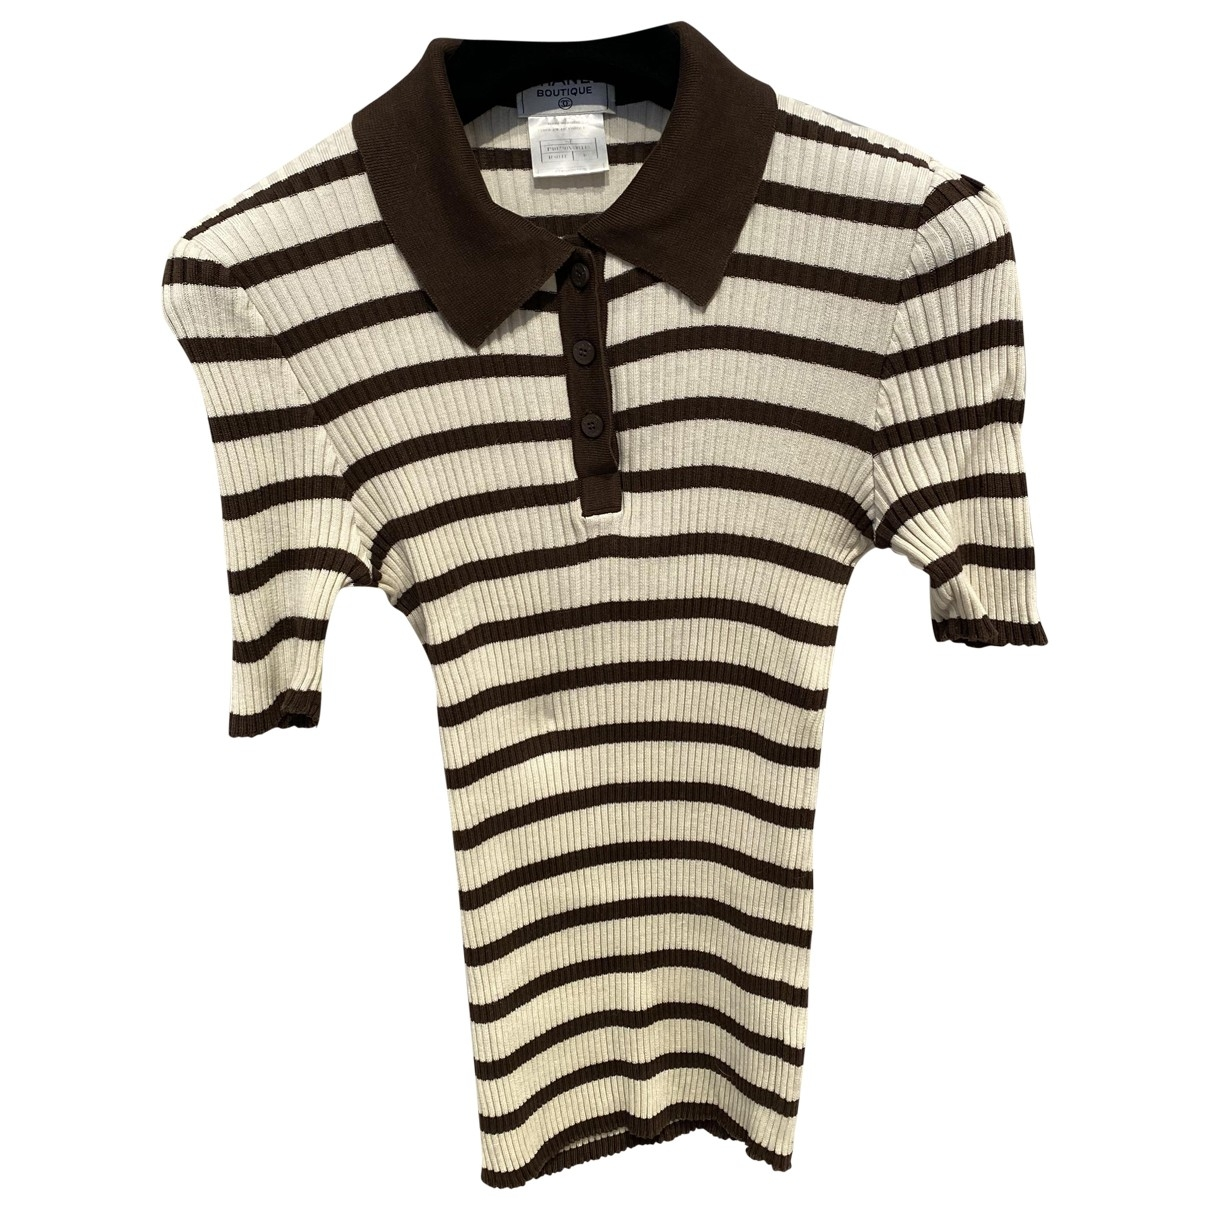 Chanel \N Brown Cotton  top for Women 46 FR